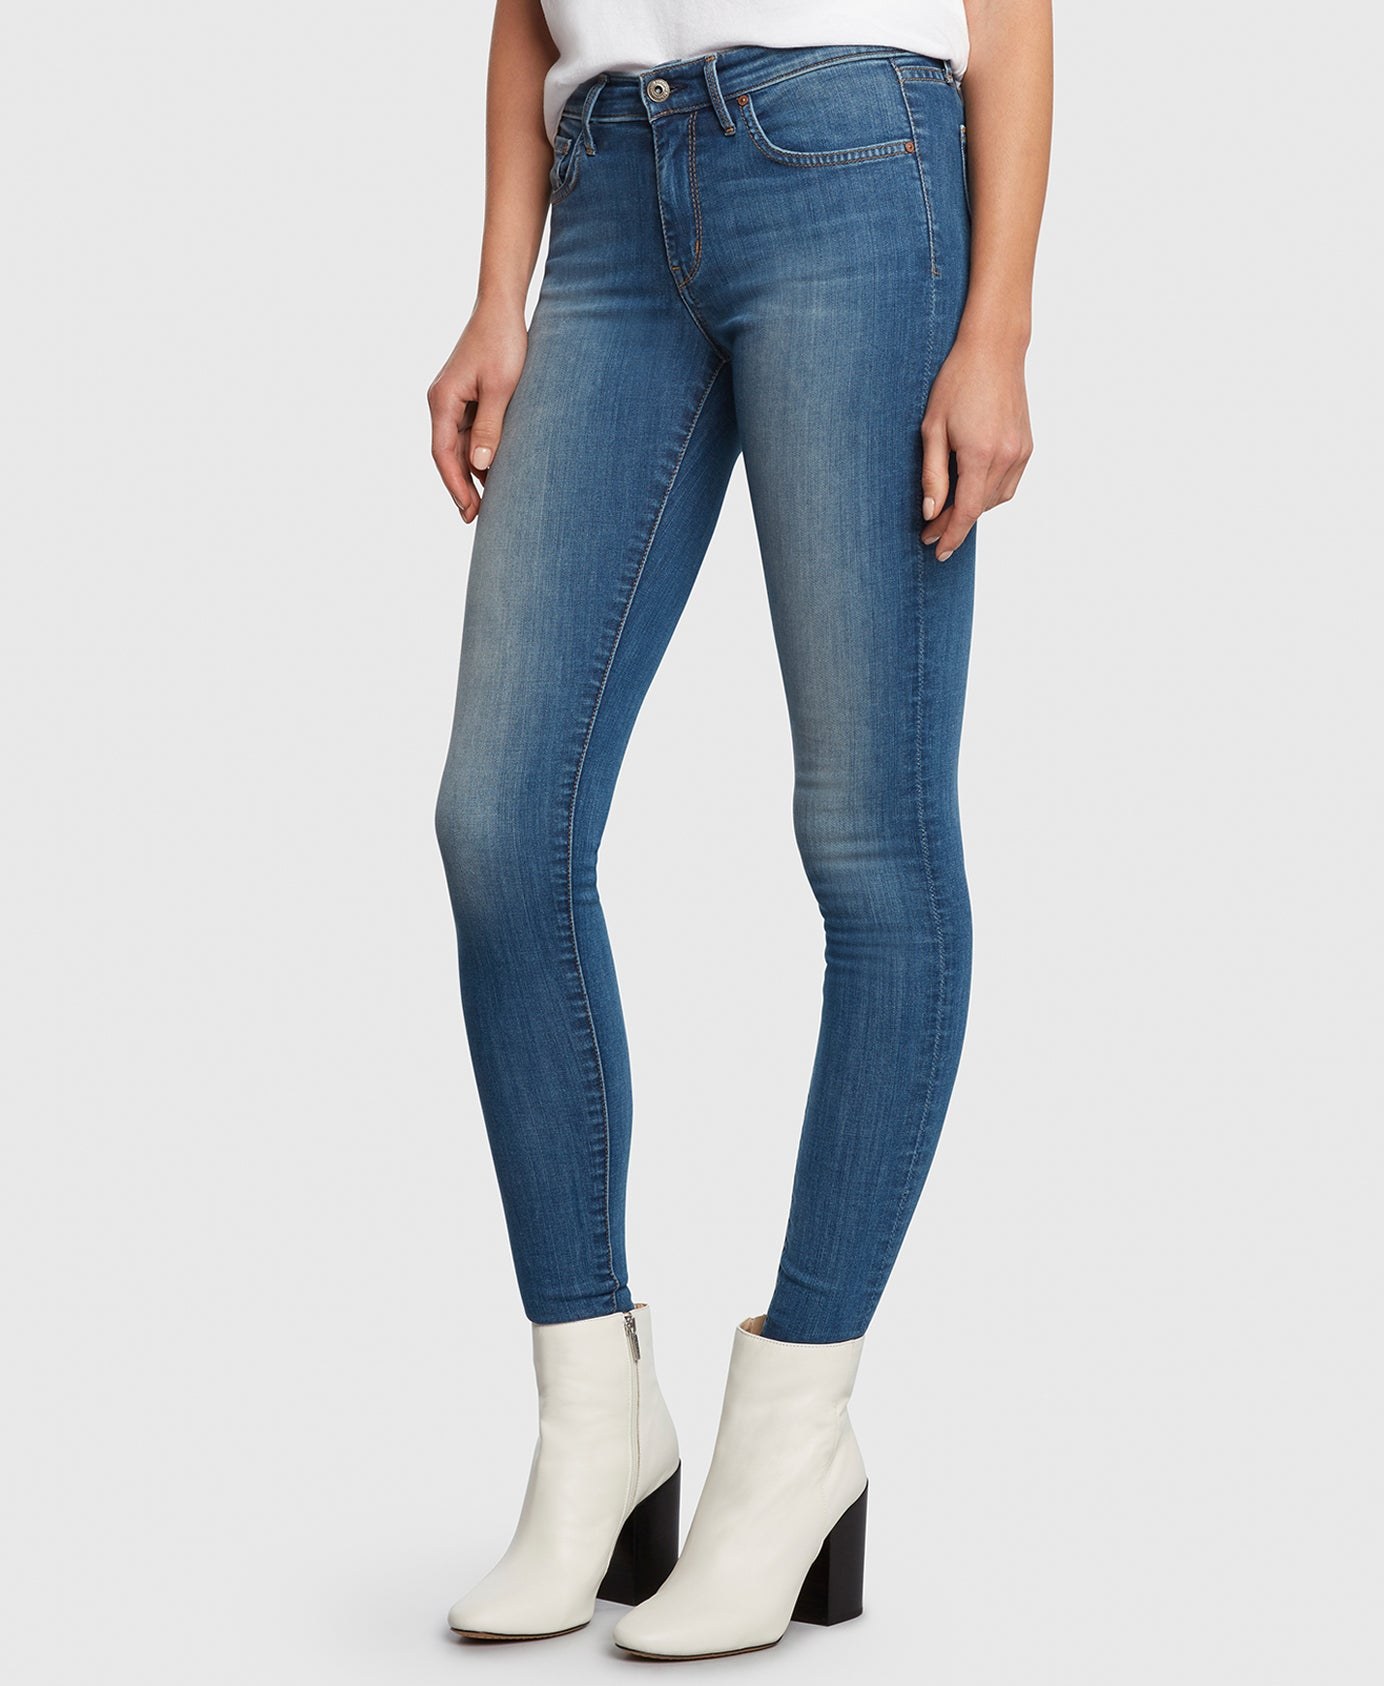 DREAMER in Escapade Principle Denim skinny jeans detail